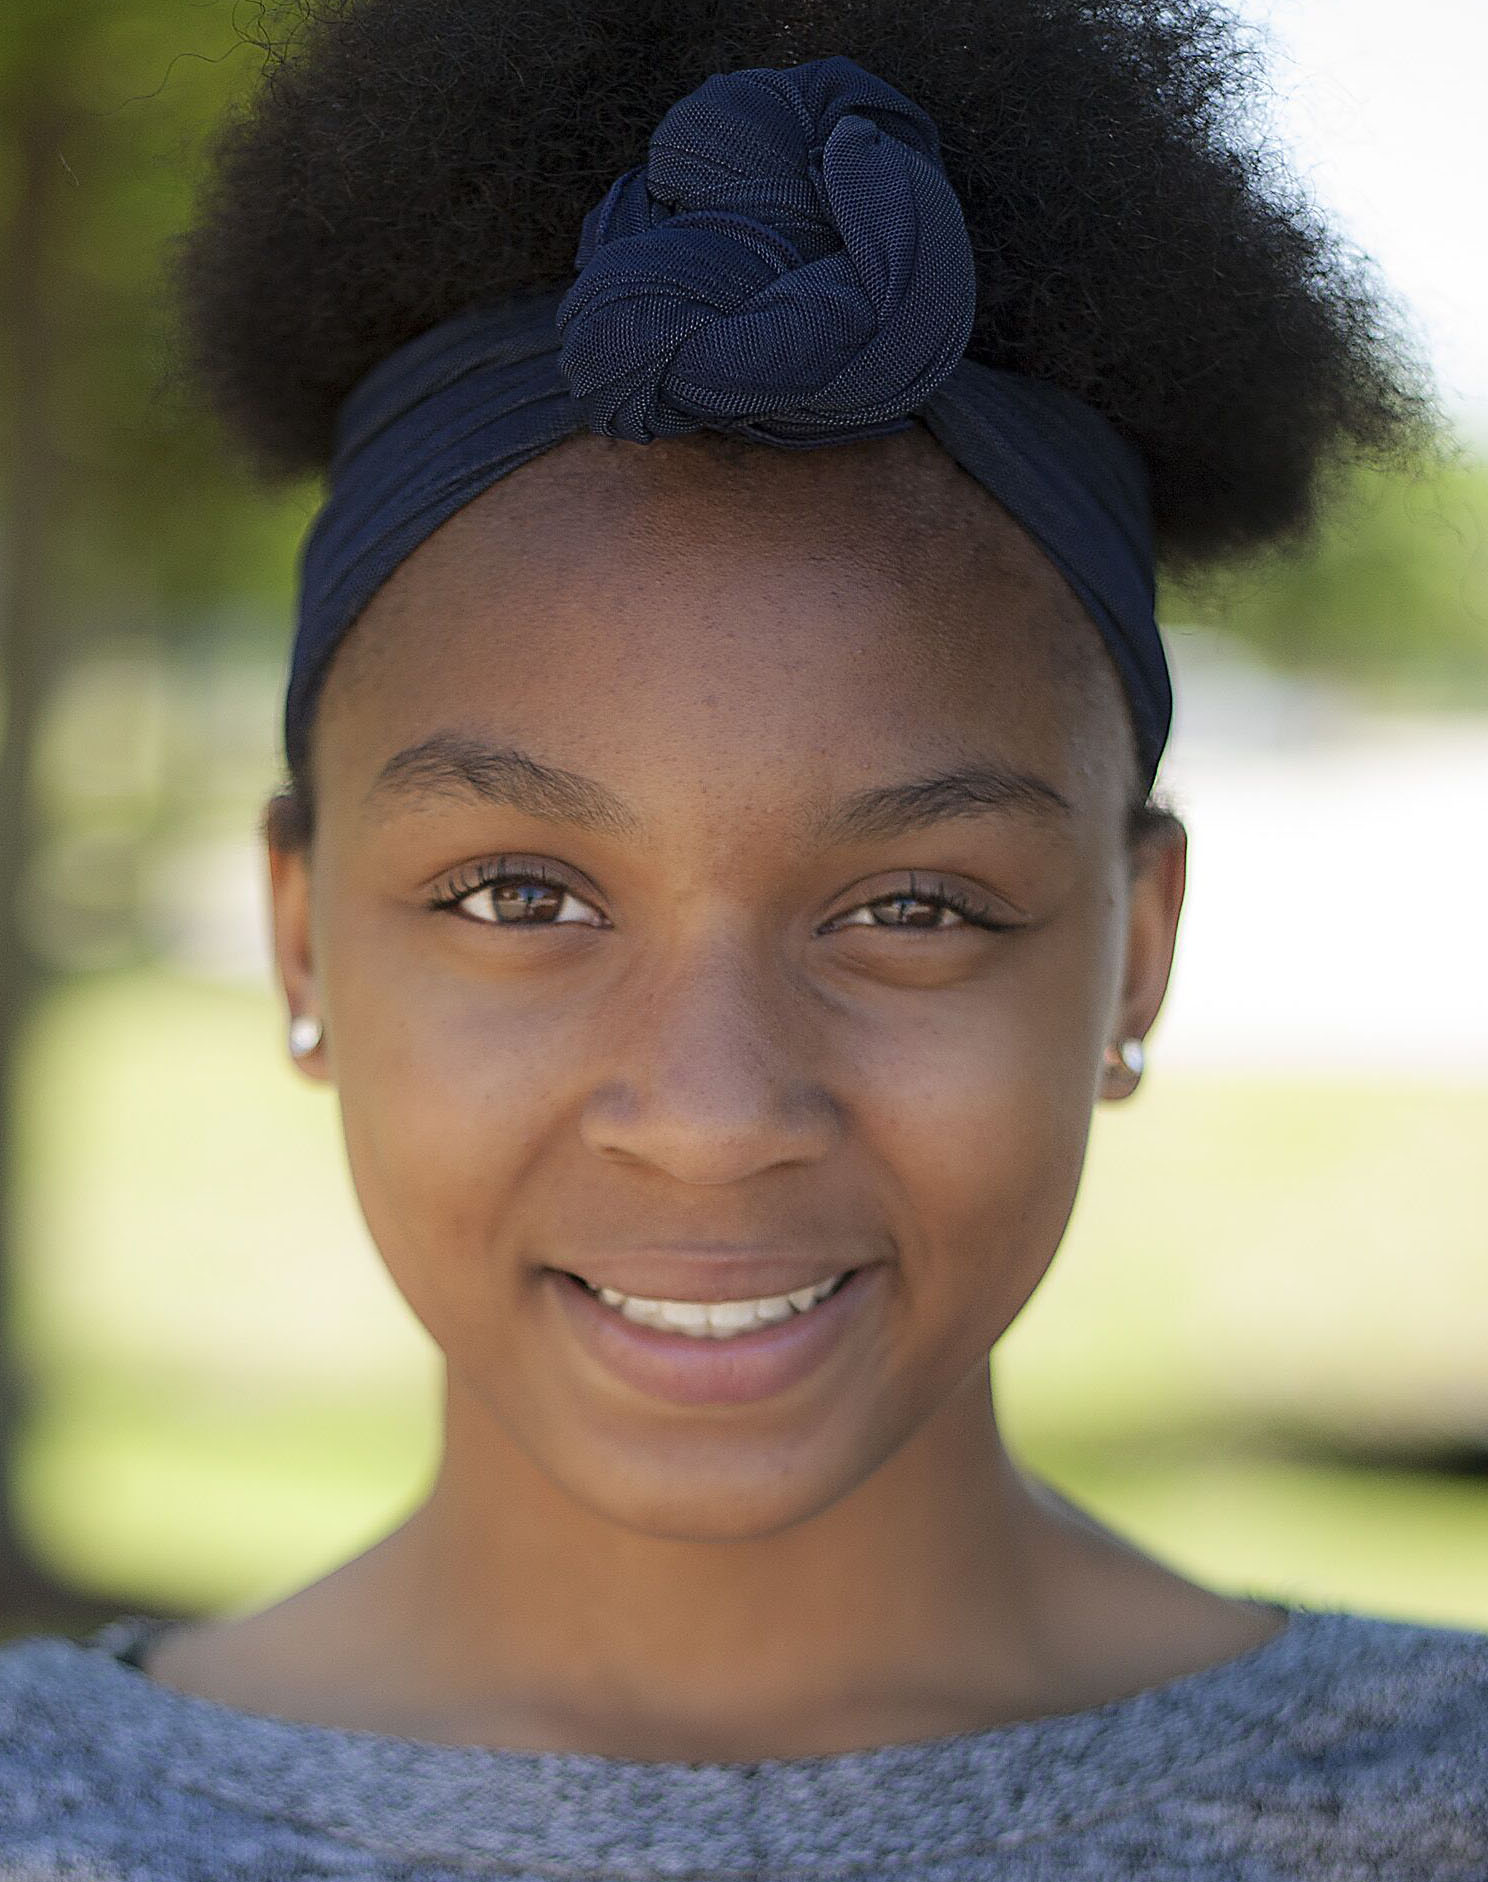 JANAE - Female, age 13